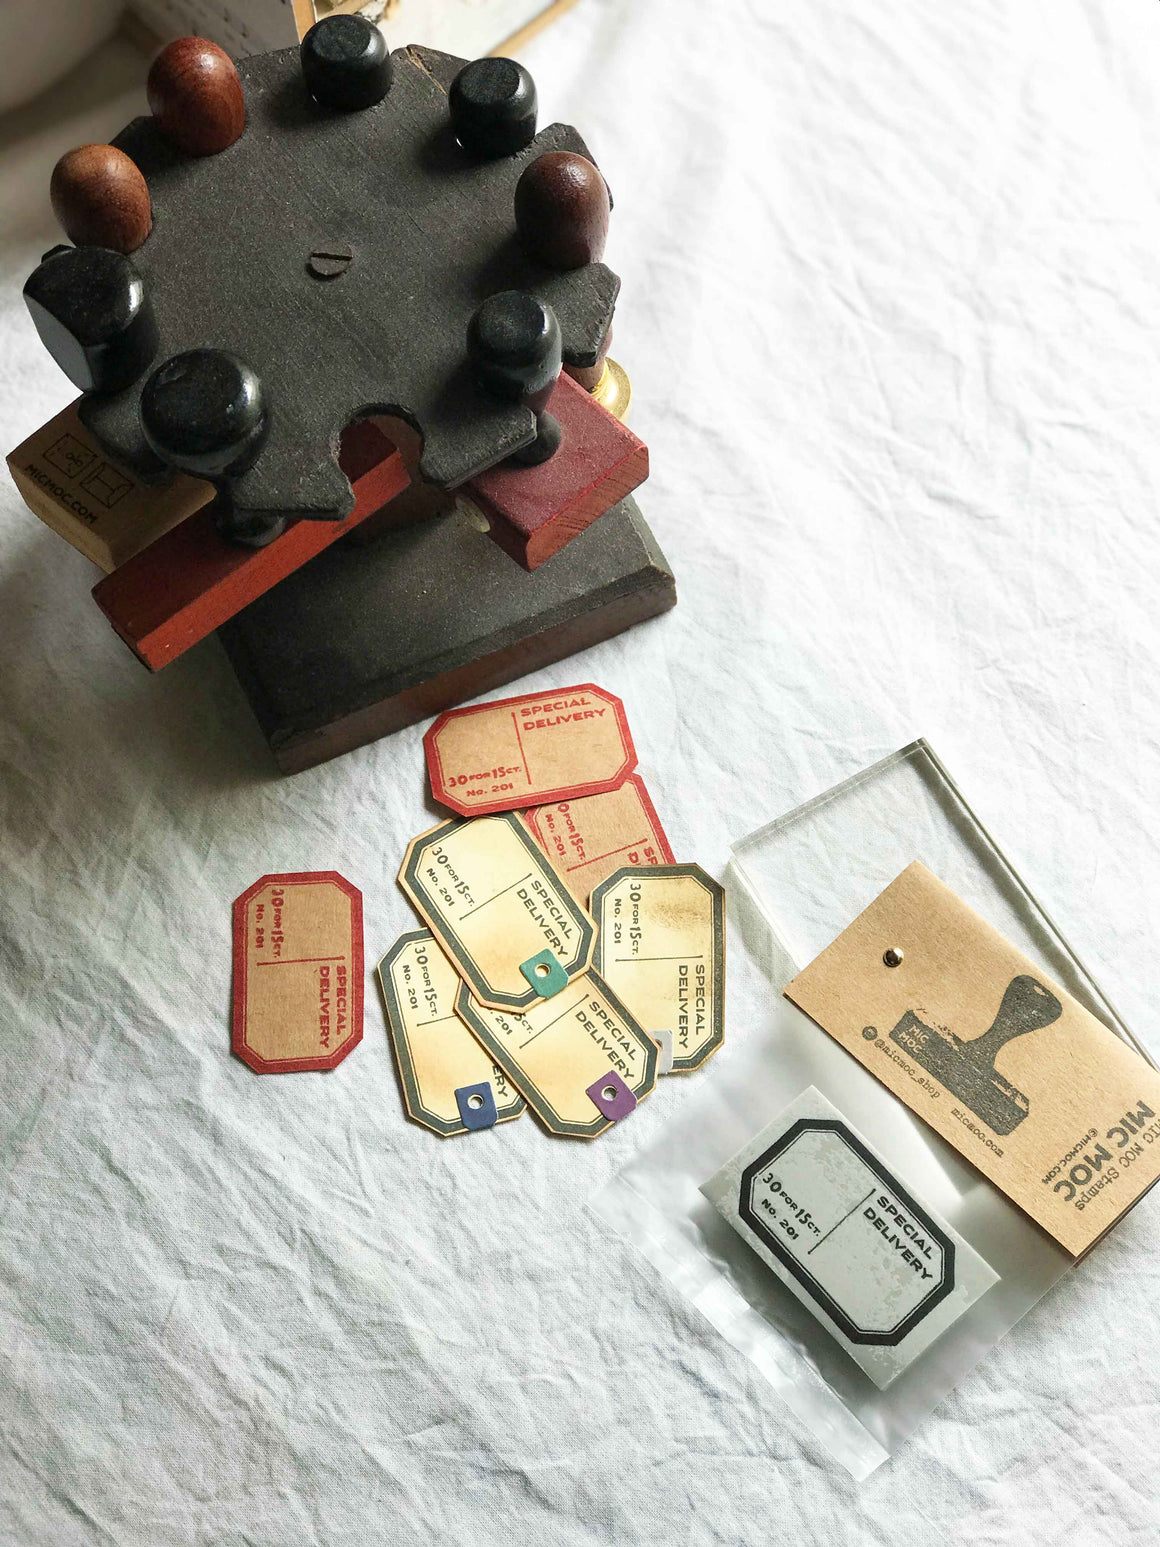 'Special Delivery' Dennison-inspired Vintage Label Rubber Stamp - Vintage Post by Mic Moc